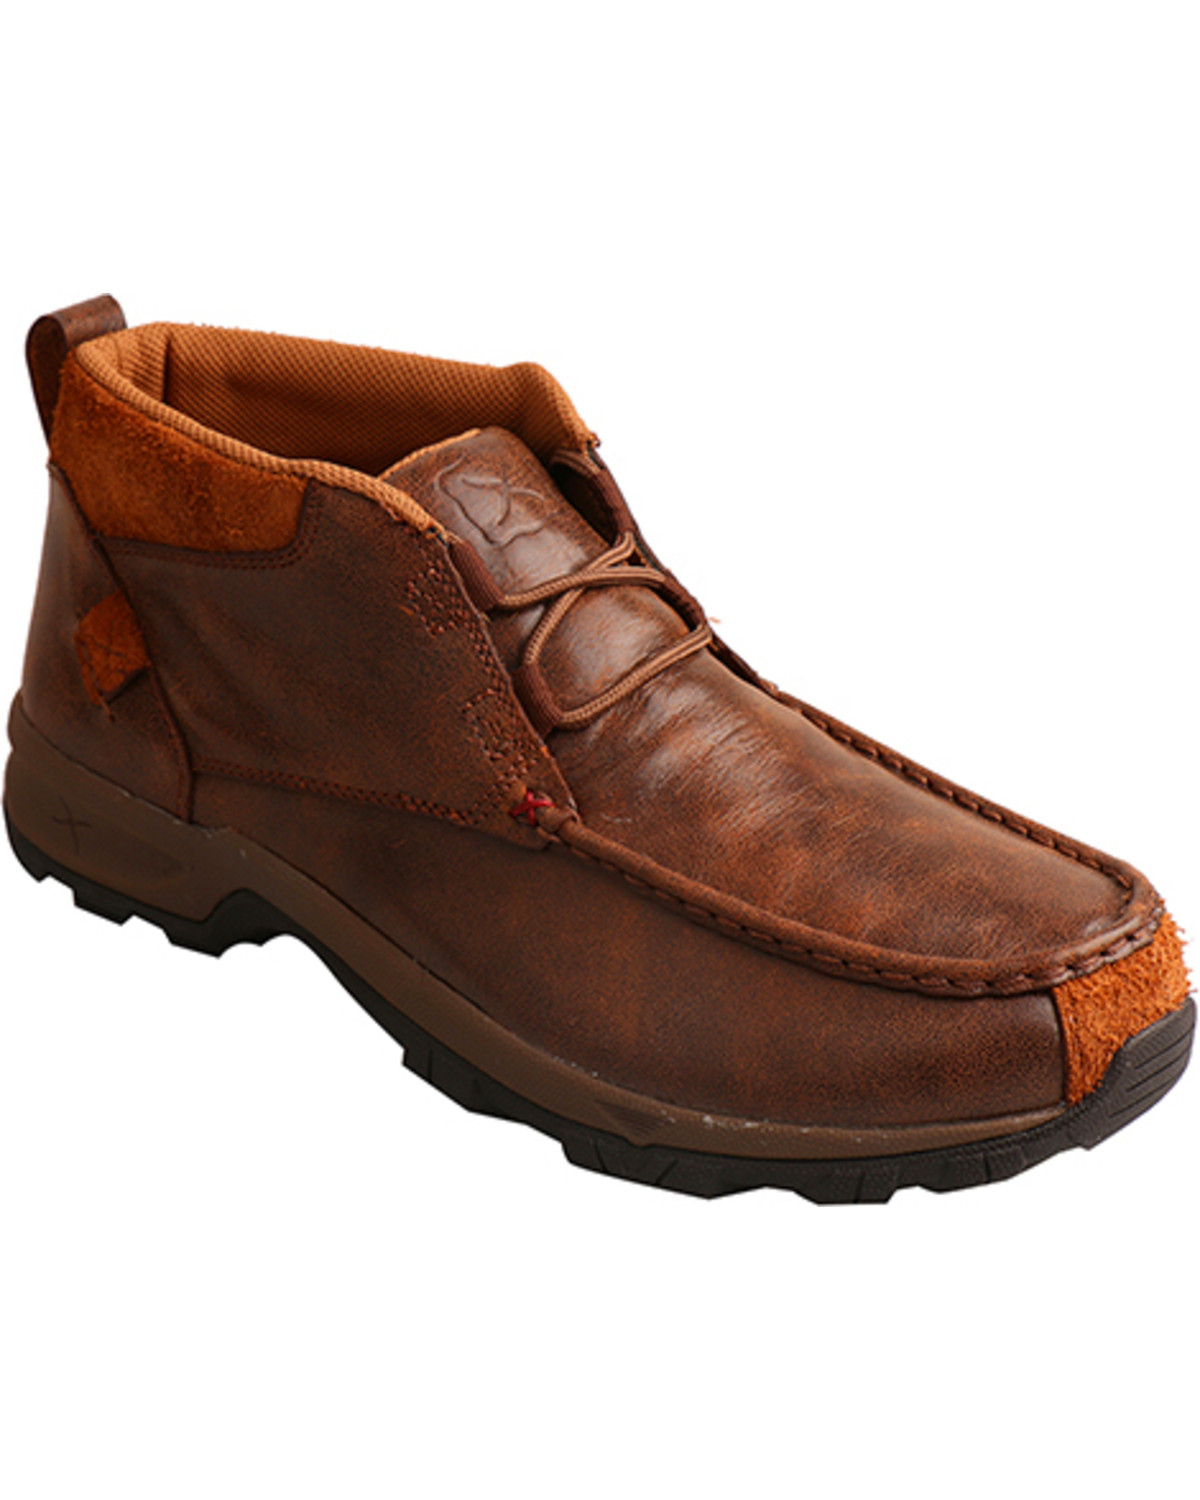 Mens Waterproof Shoes Clearance